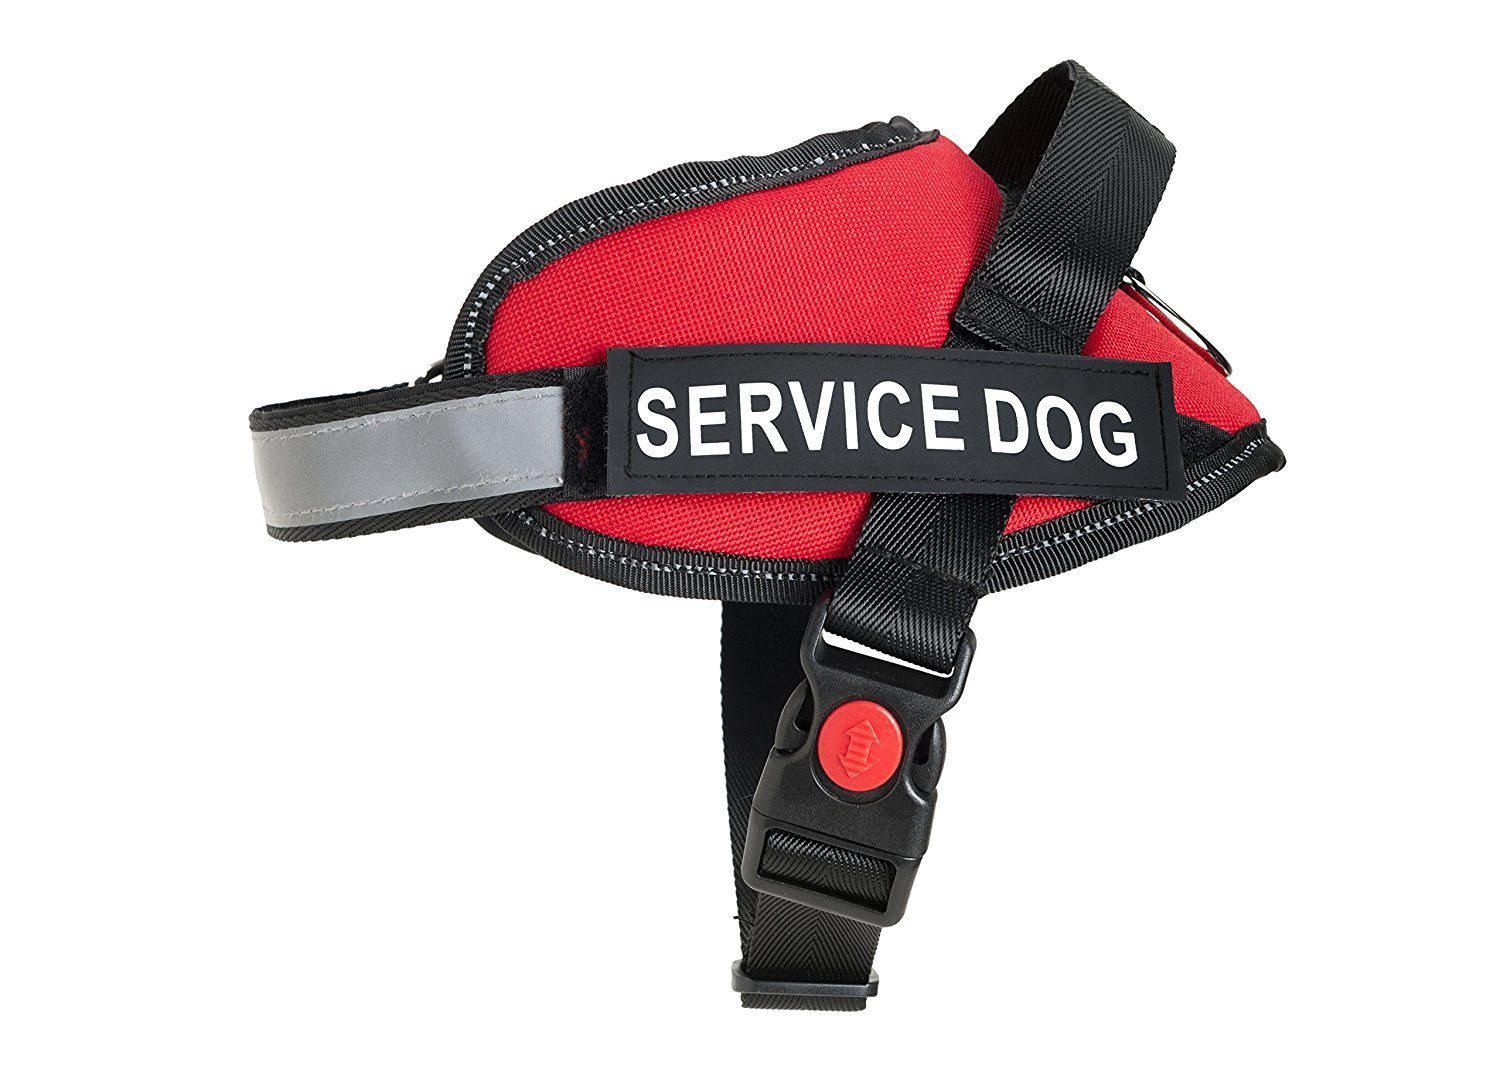 Service Dog Vest - Premium Quality Service Dog Harness - Improved Design - Fully Adjustable - Bright Red Safety Color with Reflective Strap (XXL)